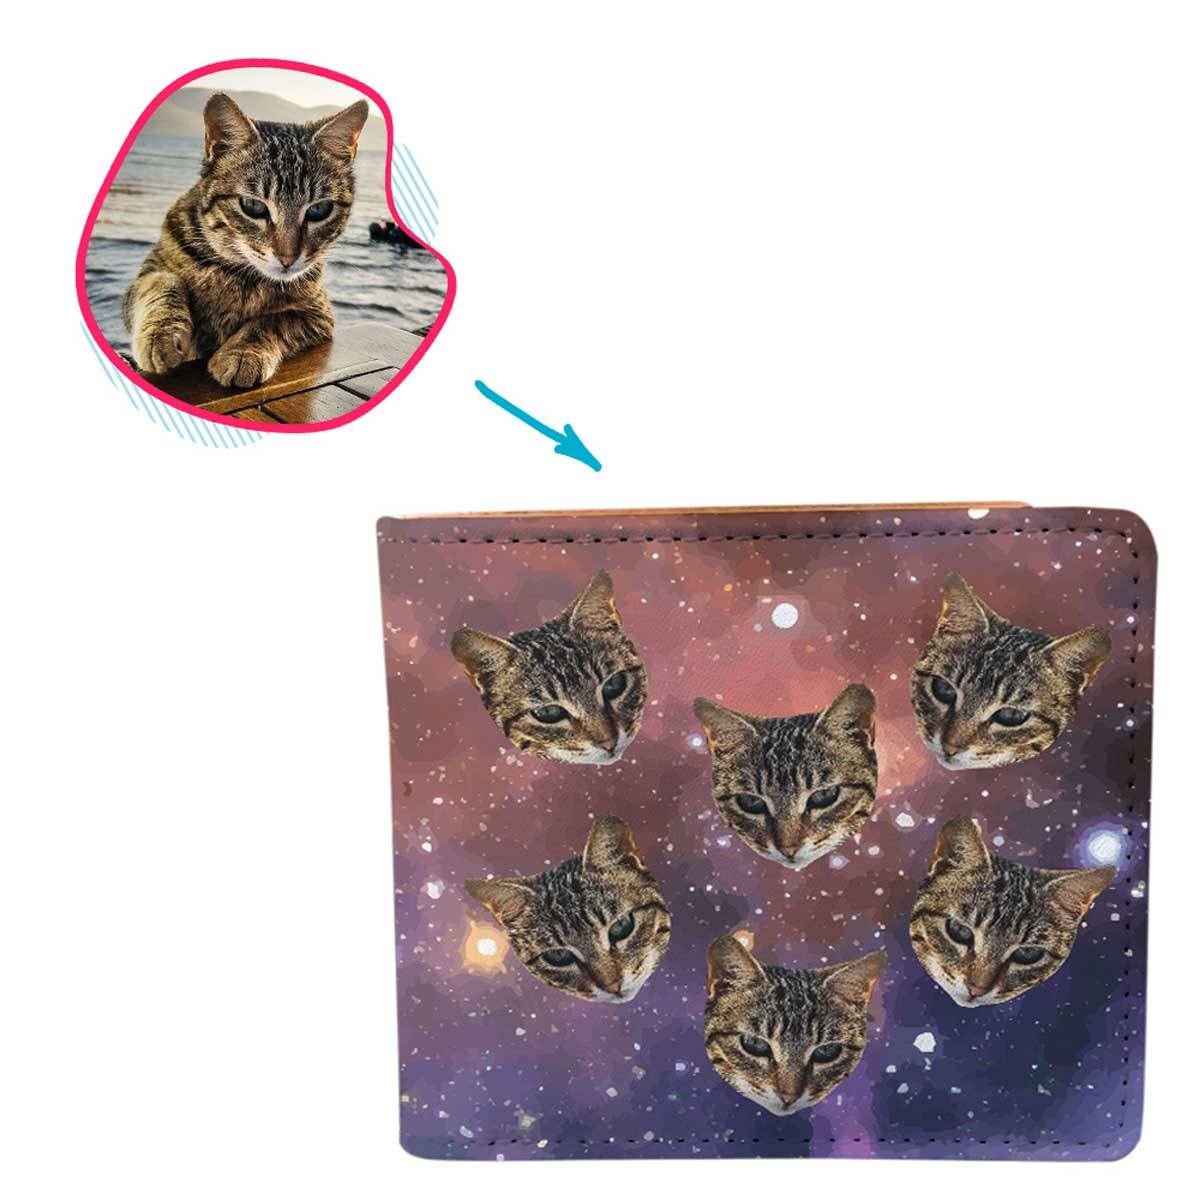 galaxy Galaxy wallet personalized with photo of face printed on it